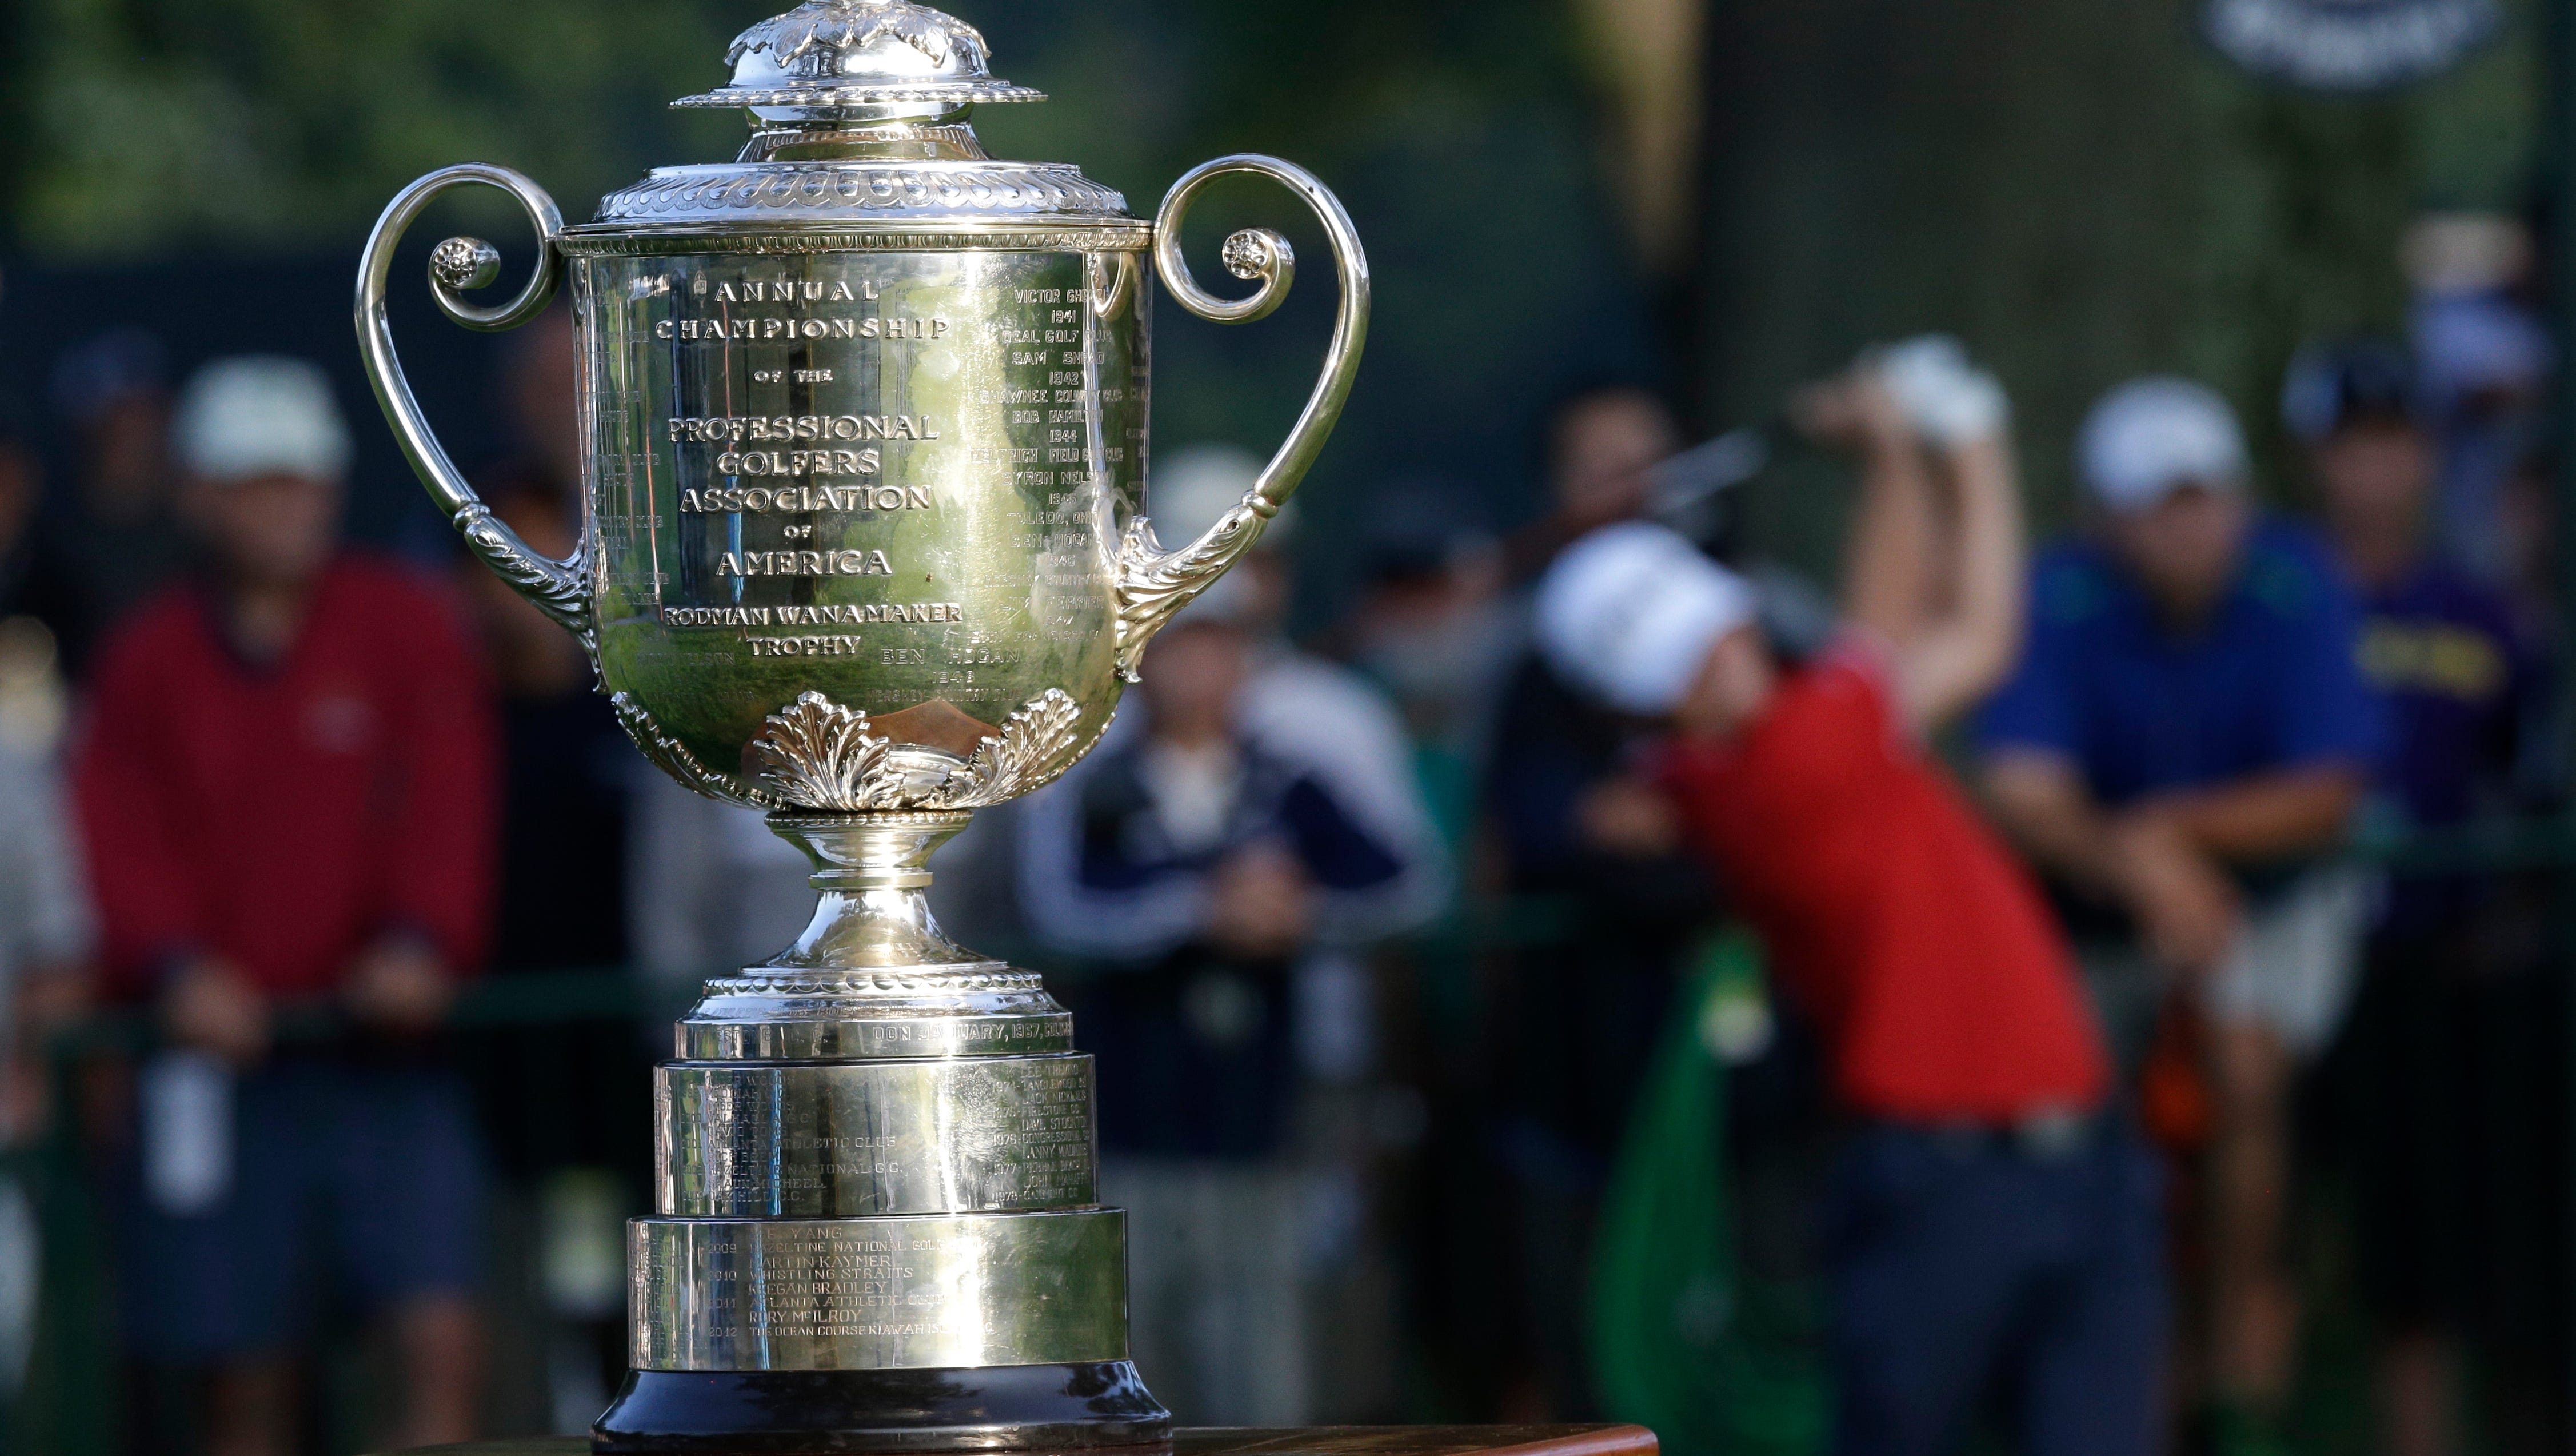 The Wanamaker Trophy is displayed near the first hole as Luke Guthrie tees off.